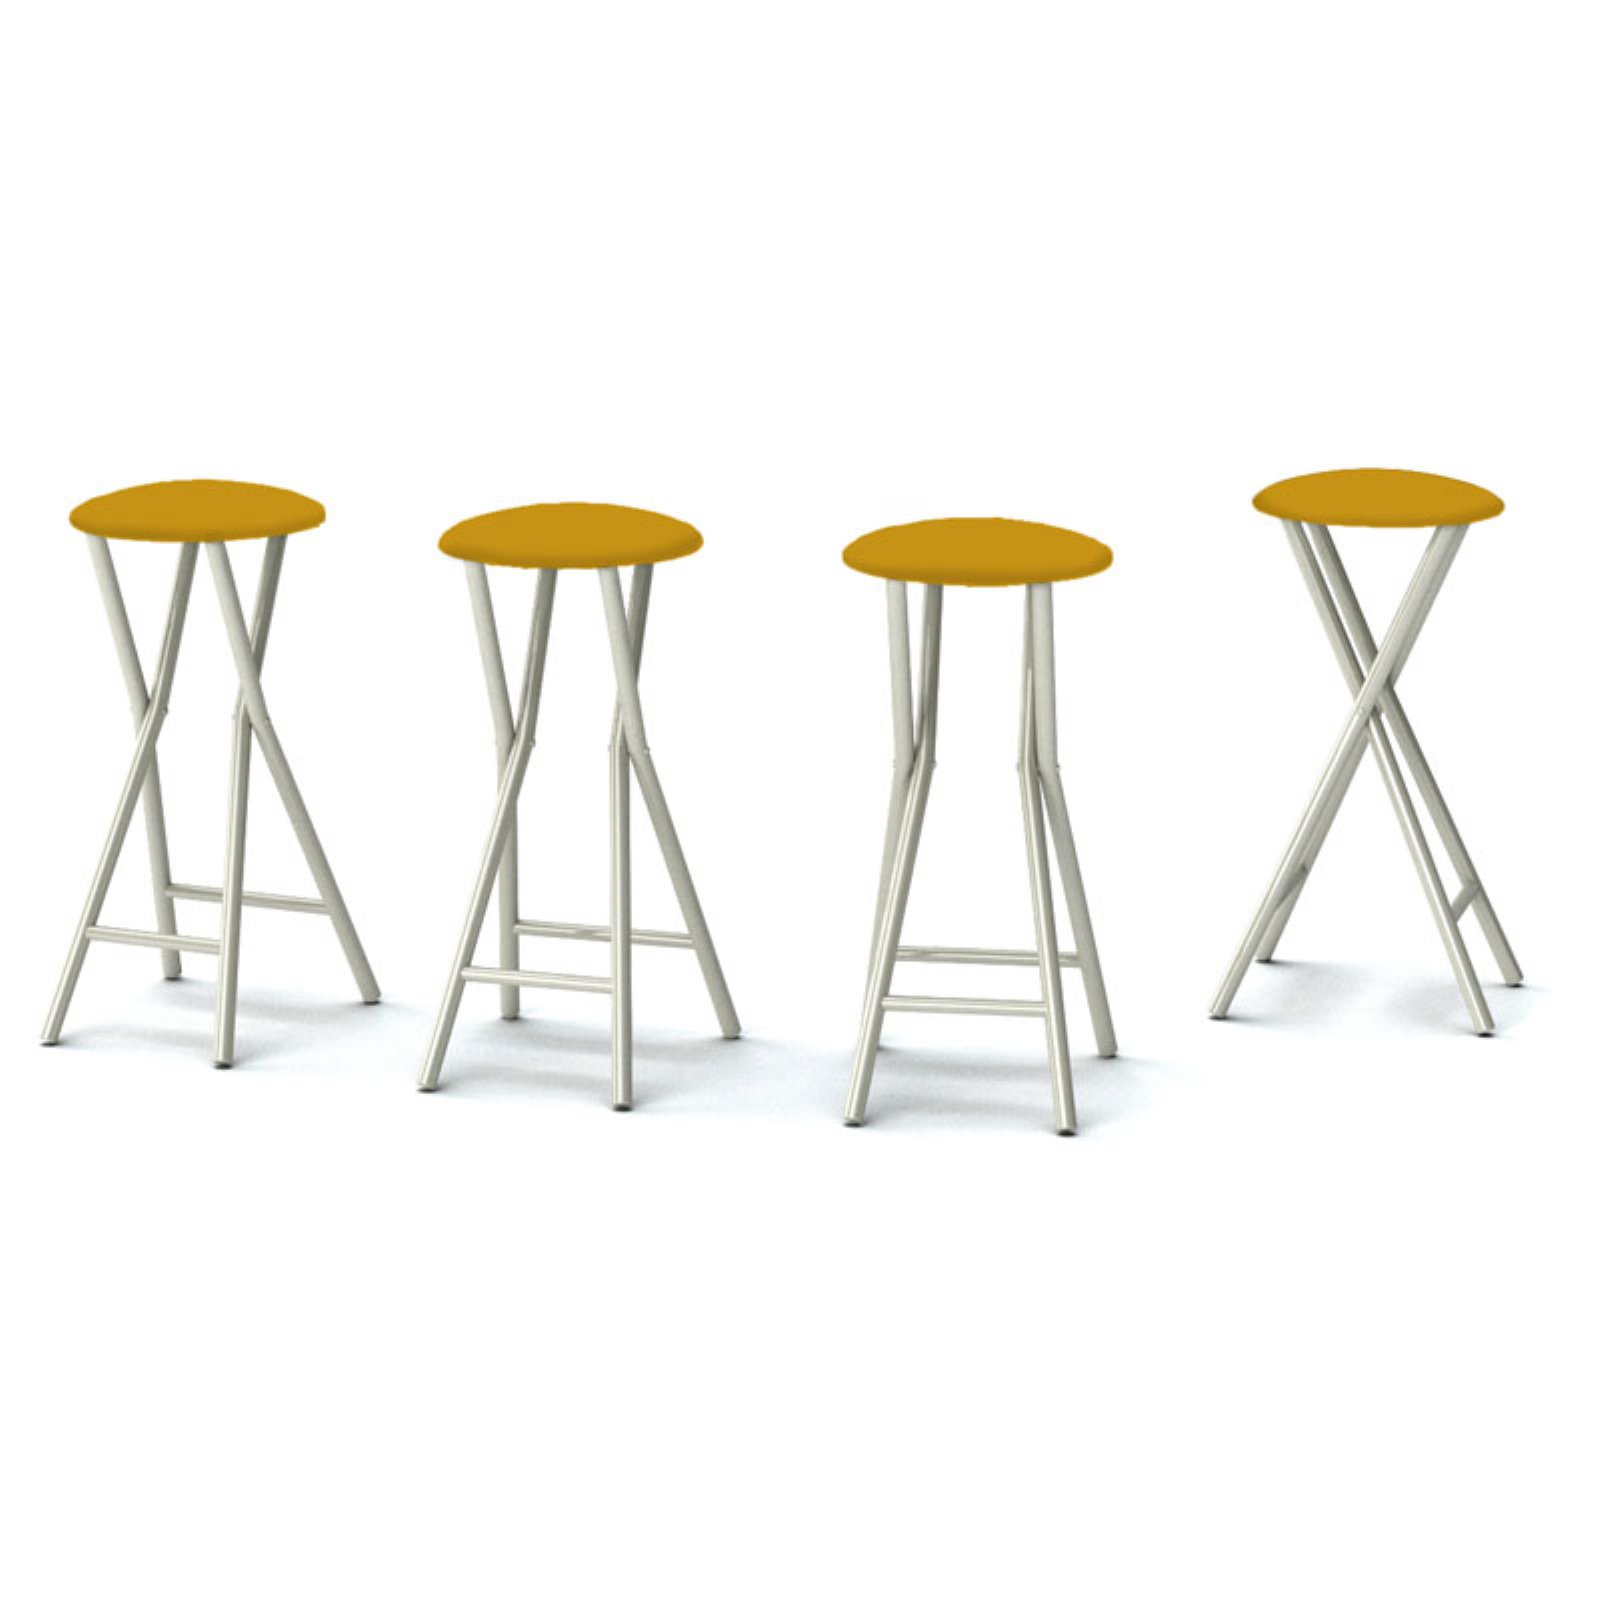 Best of Times Padded Solid Outdoor Backless Bar Stools - Set of 4